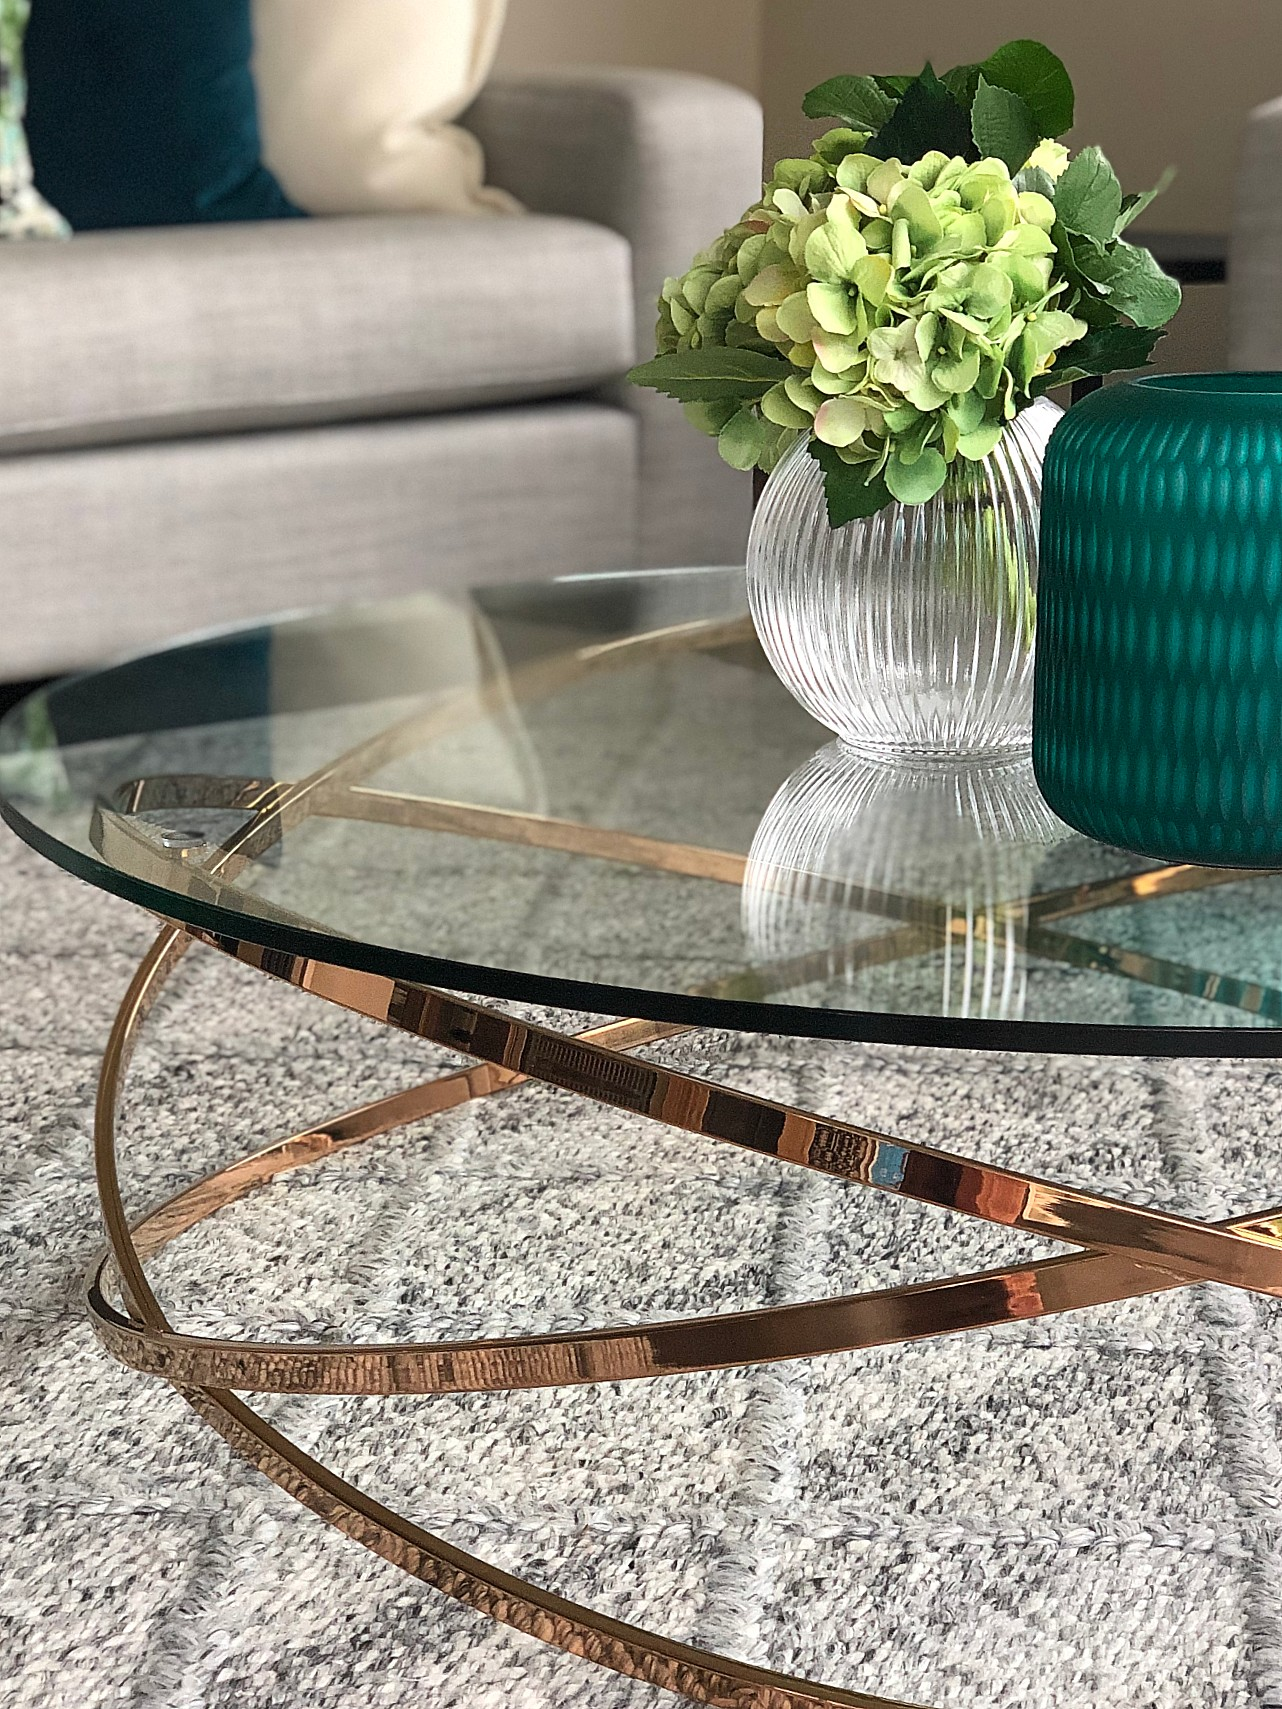 elegant modern living room with rose gold glass coffee table and teal accessories